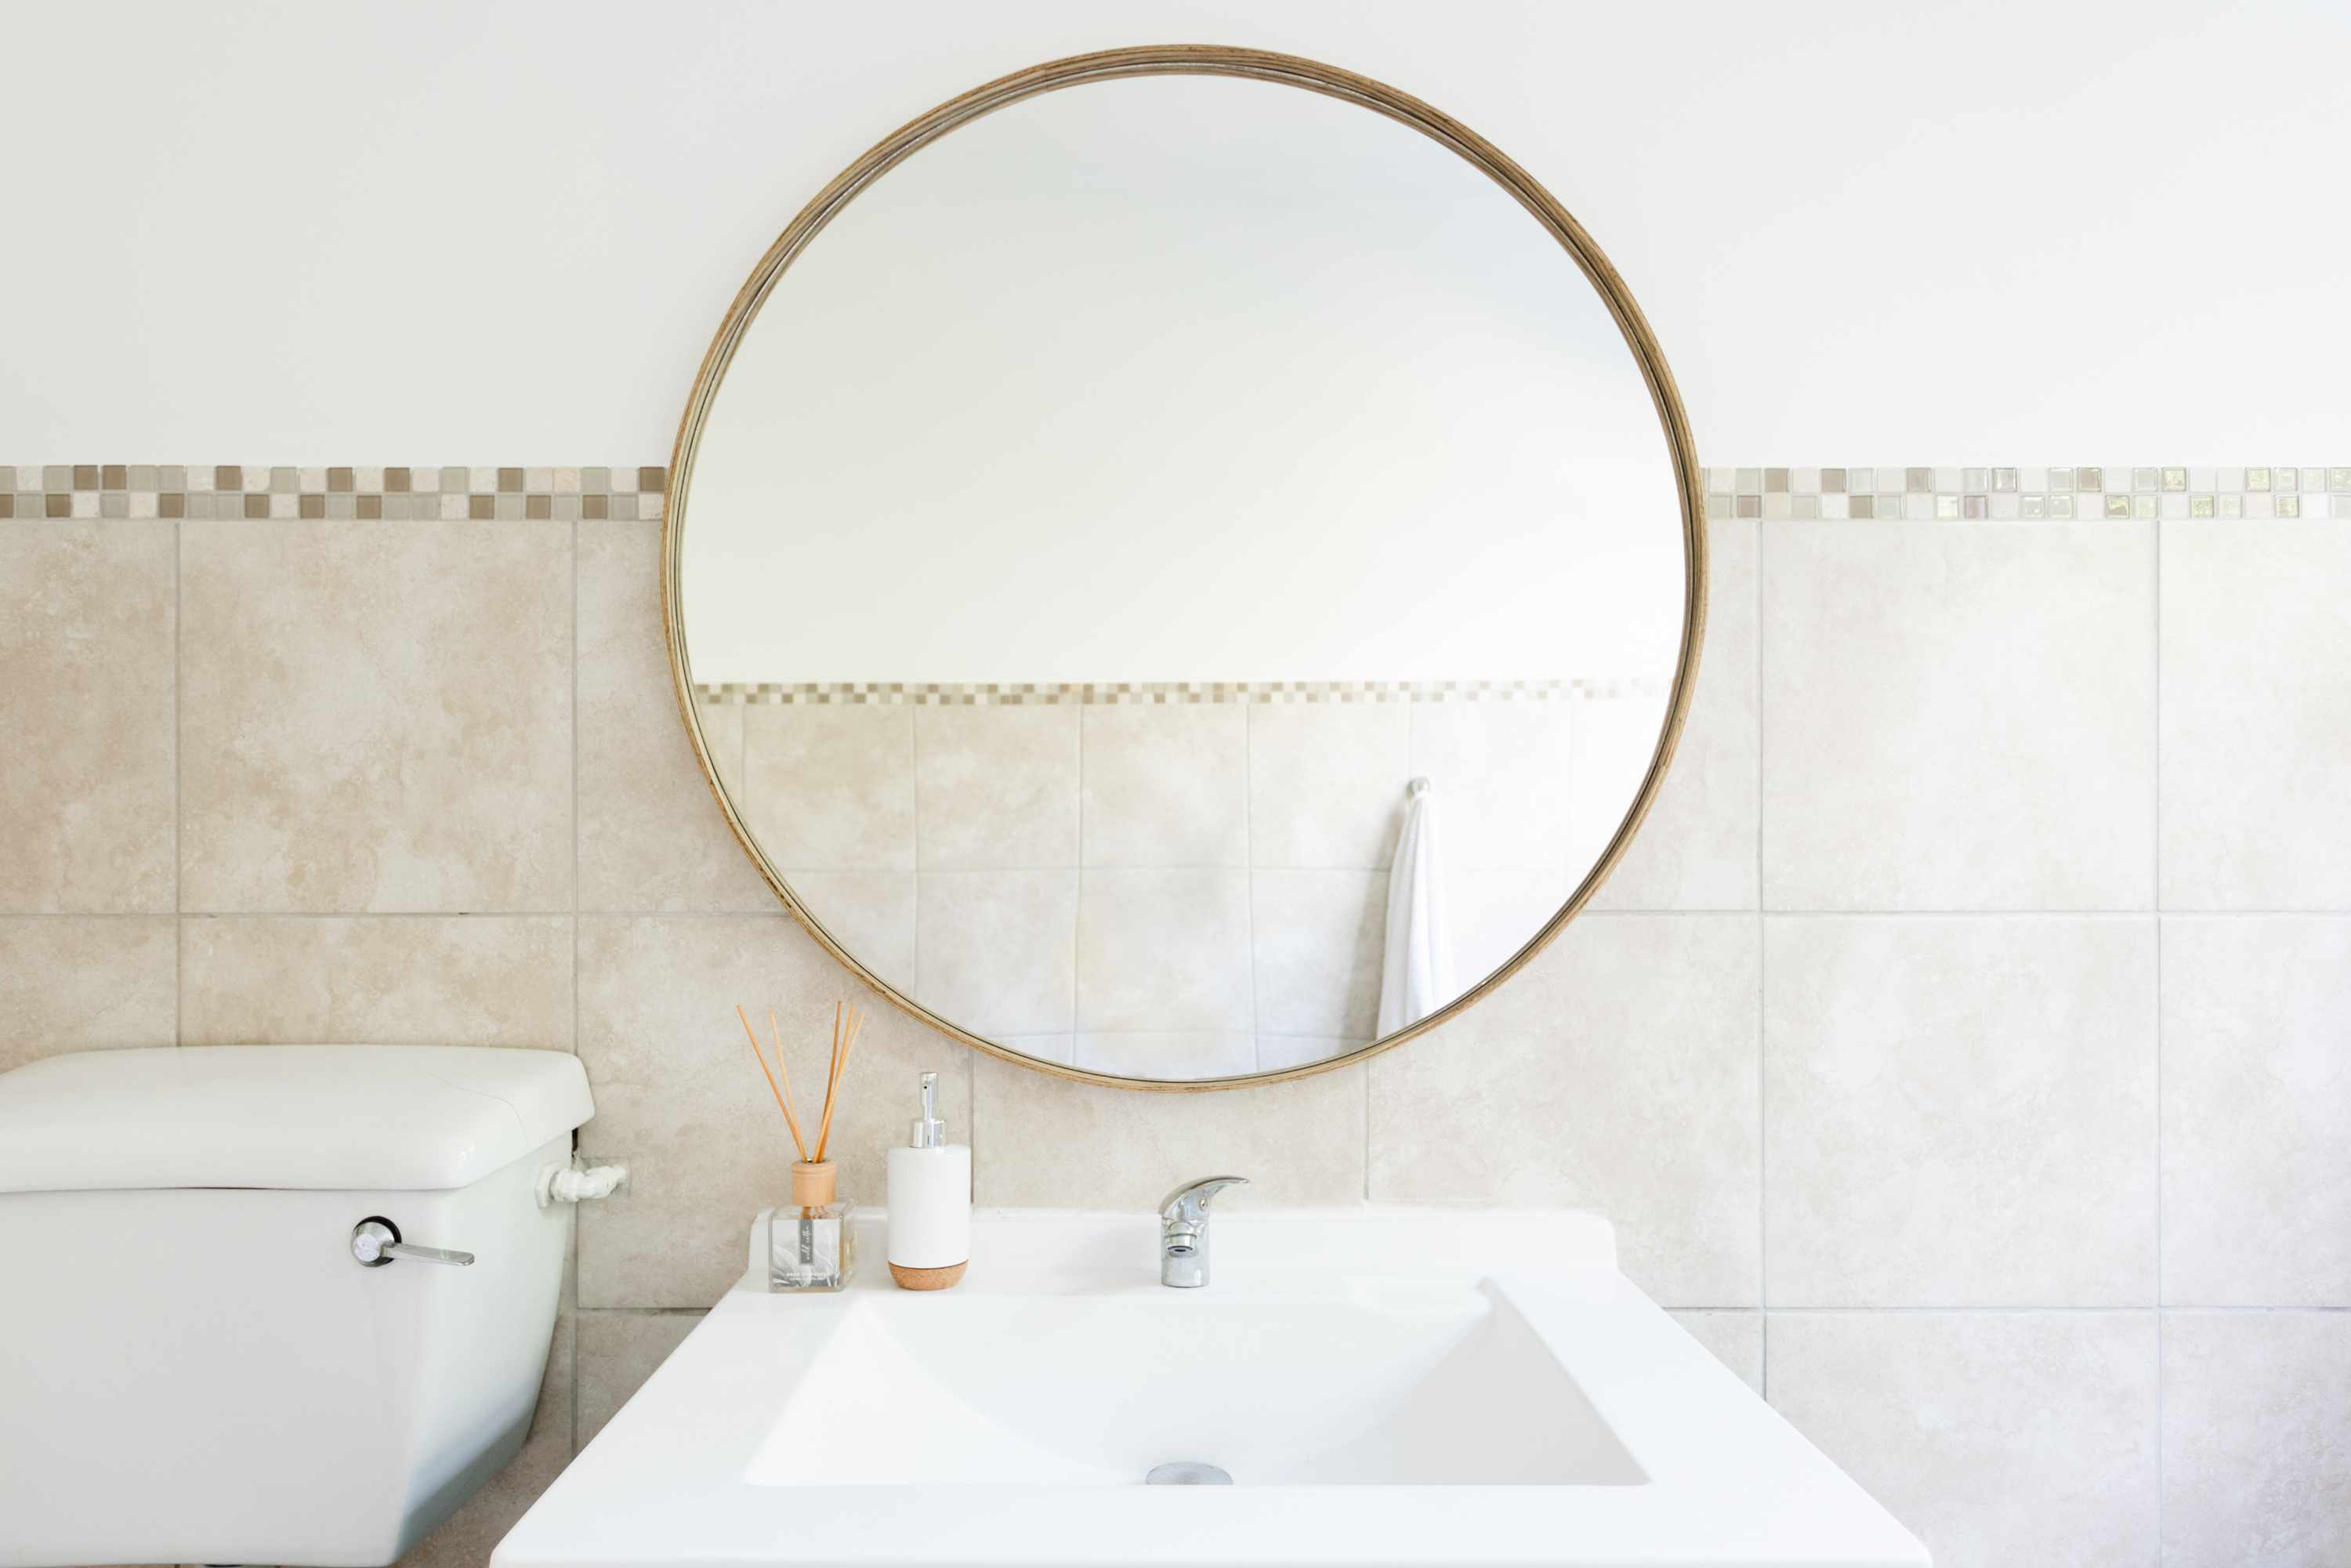 Guest bathroom with rounded mirror with cream-colored marble wall tiles and off-white walls